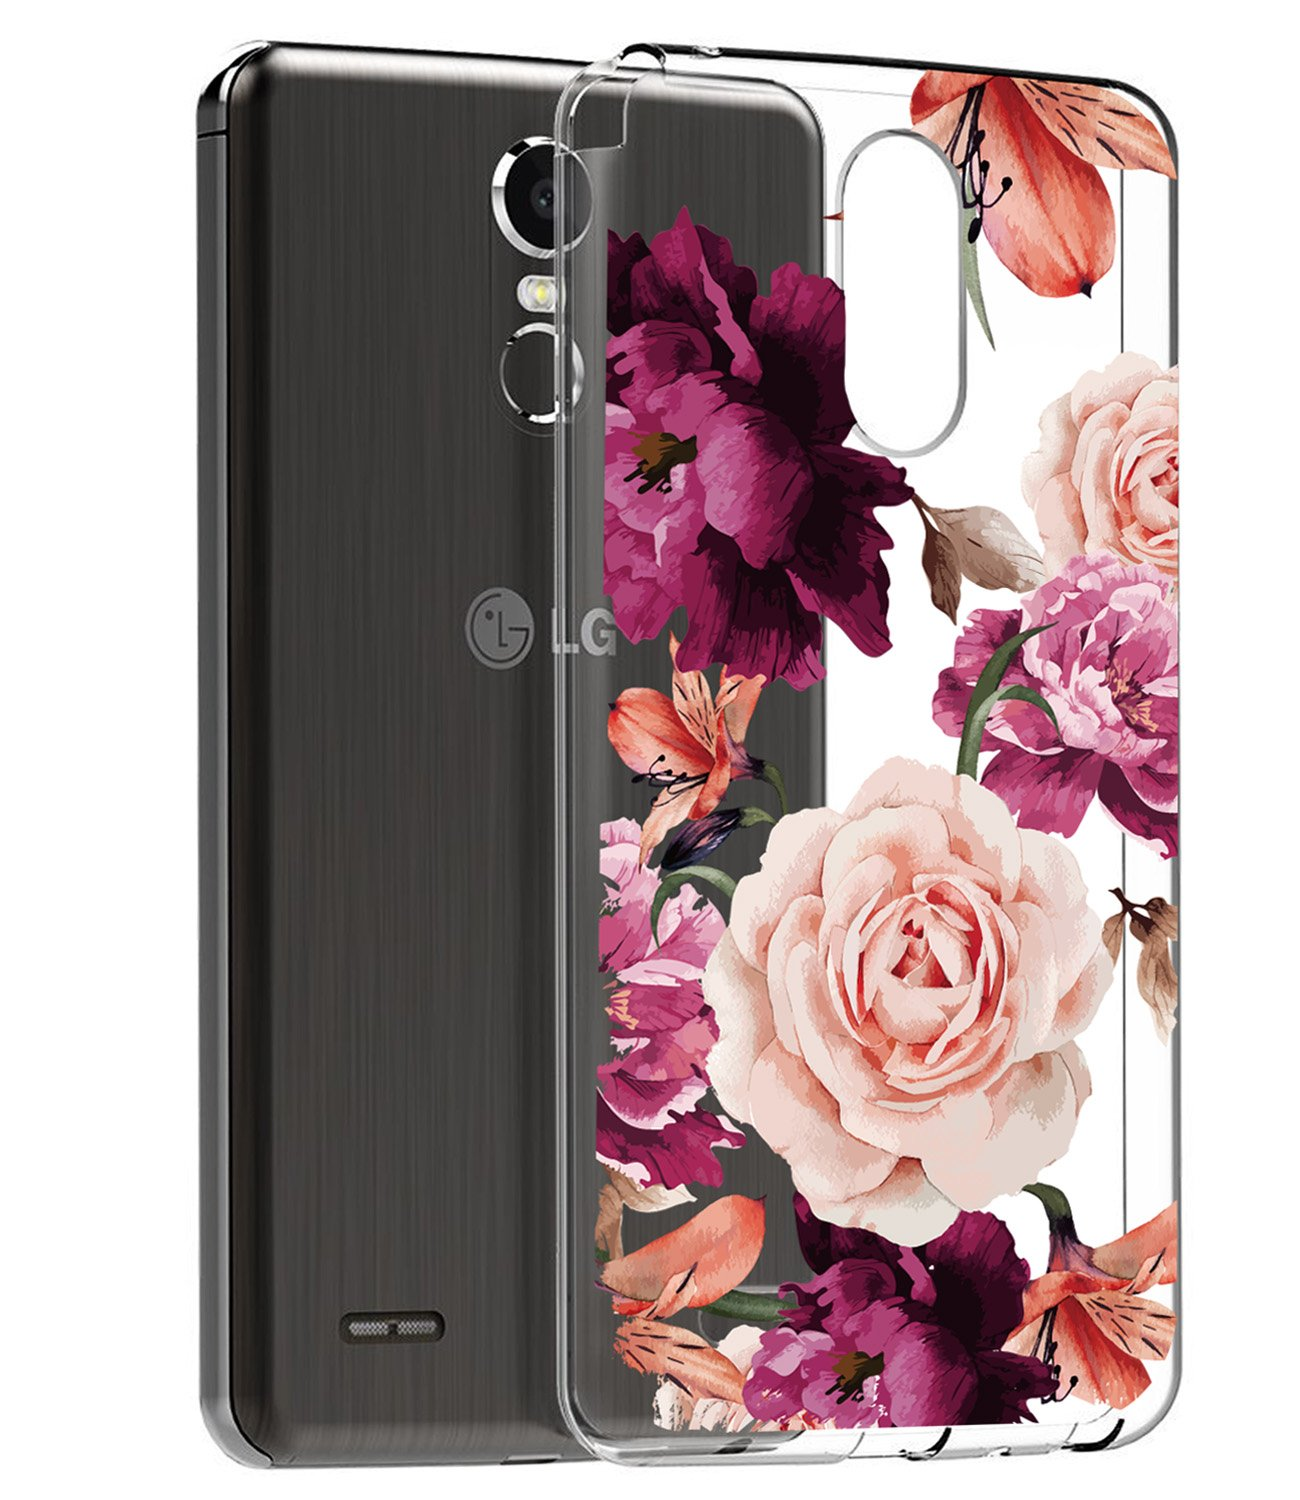 BAISRKE LG Stylo 3 Case, LG Stylo 3 Plus Case, LG Stylus 3 Case with Flowers Slim Shockproof Clear Floral Pattern Soft Flexible TPU Back Cove for LG Stylo 3/Stylo 3 Plus/LG LS777 [Purple Pink]